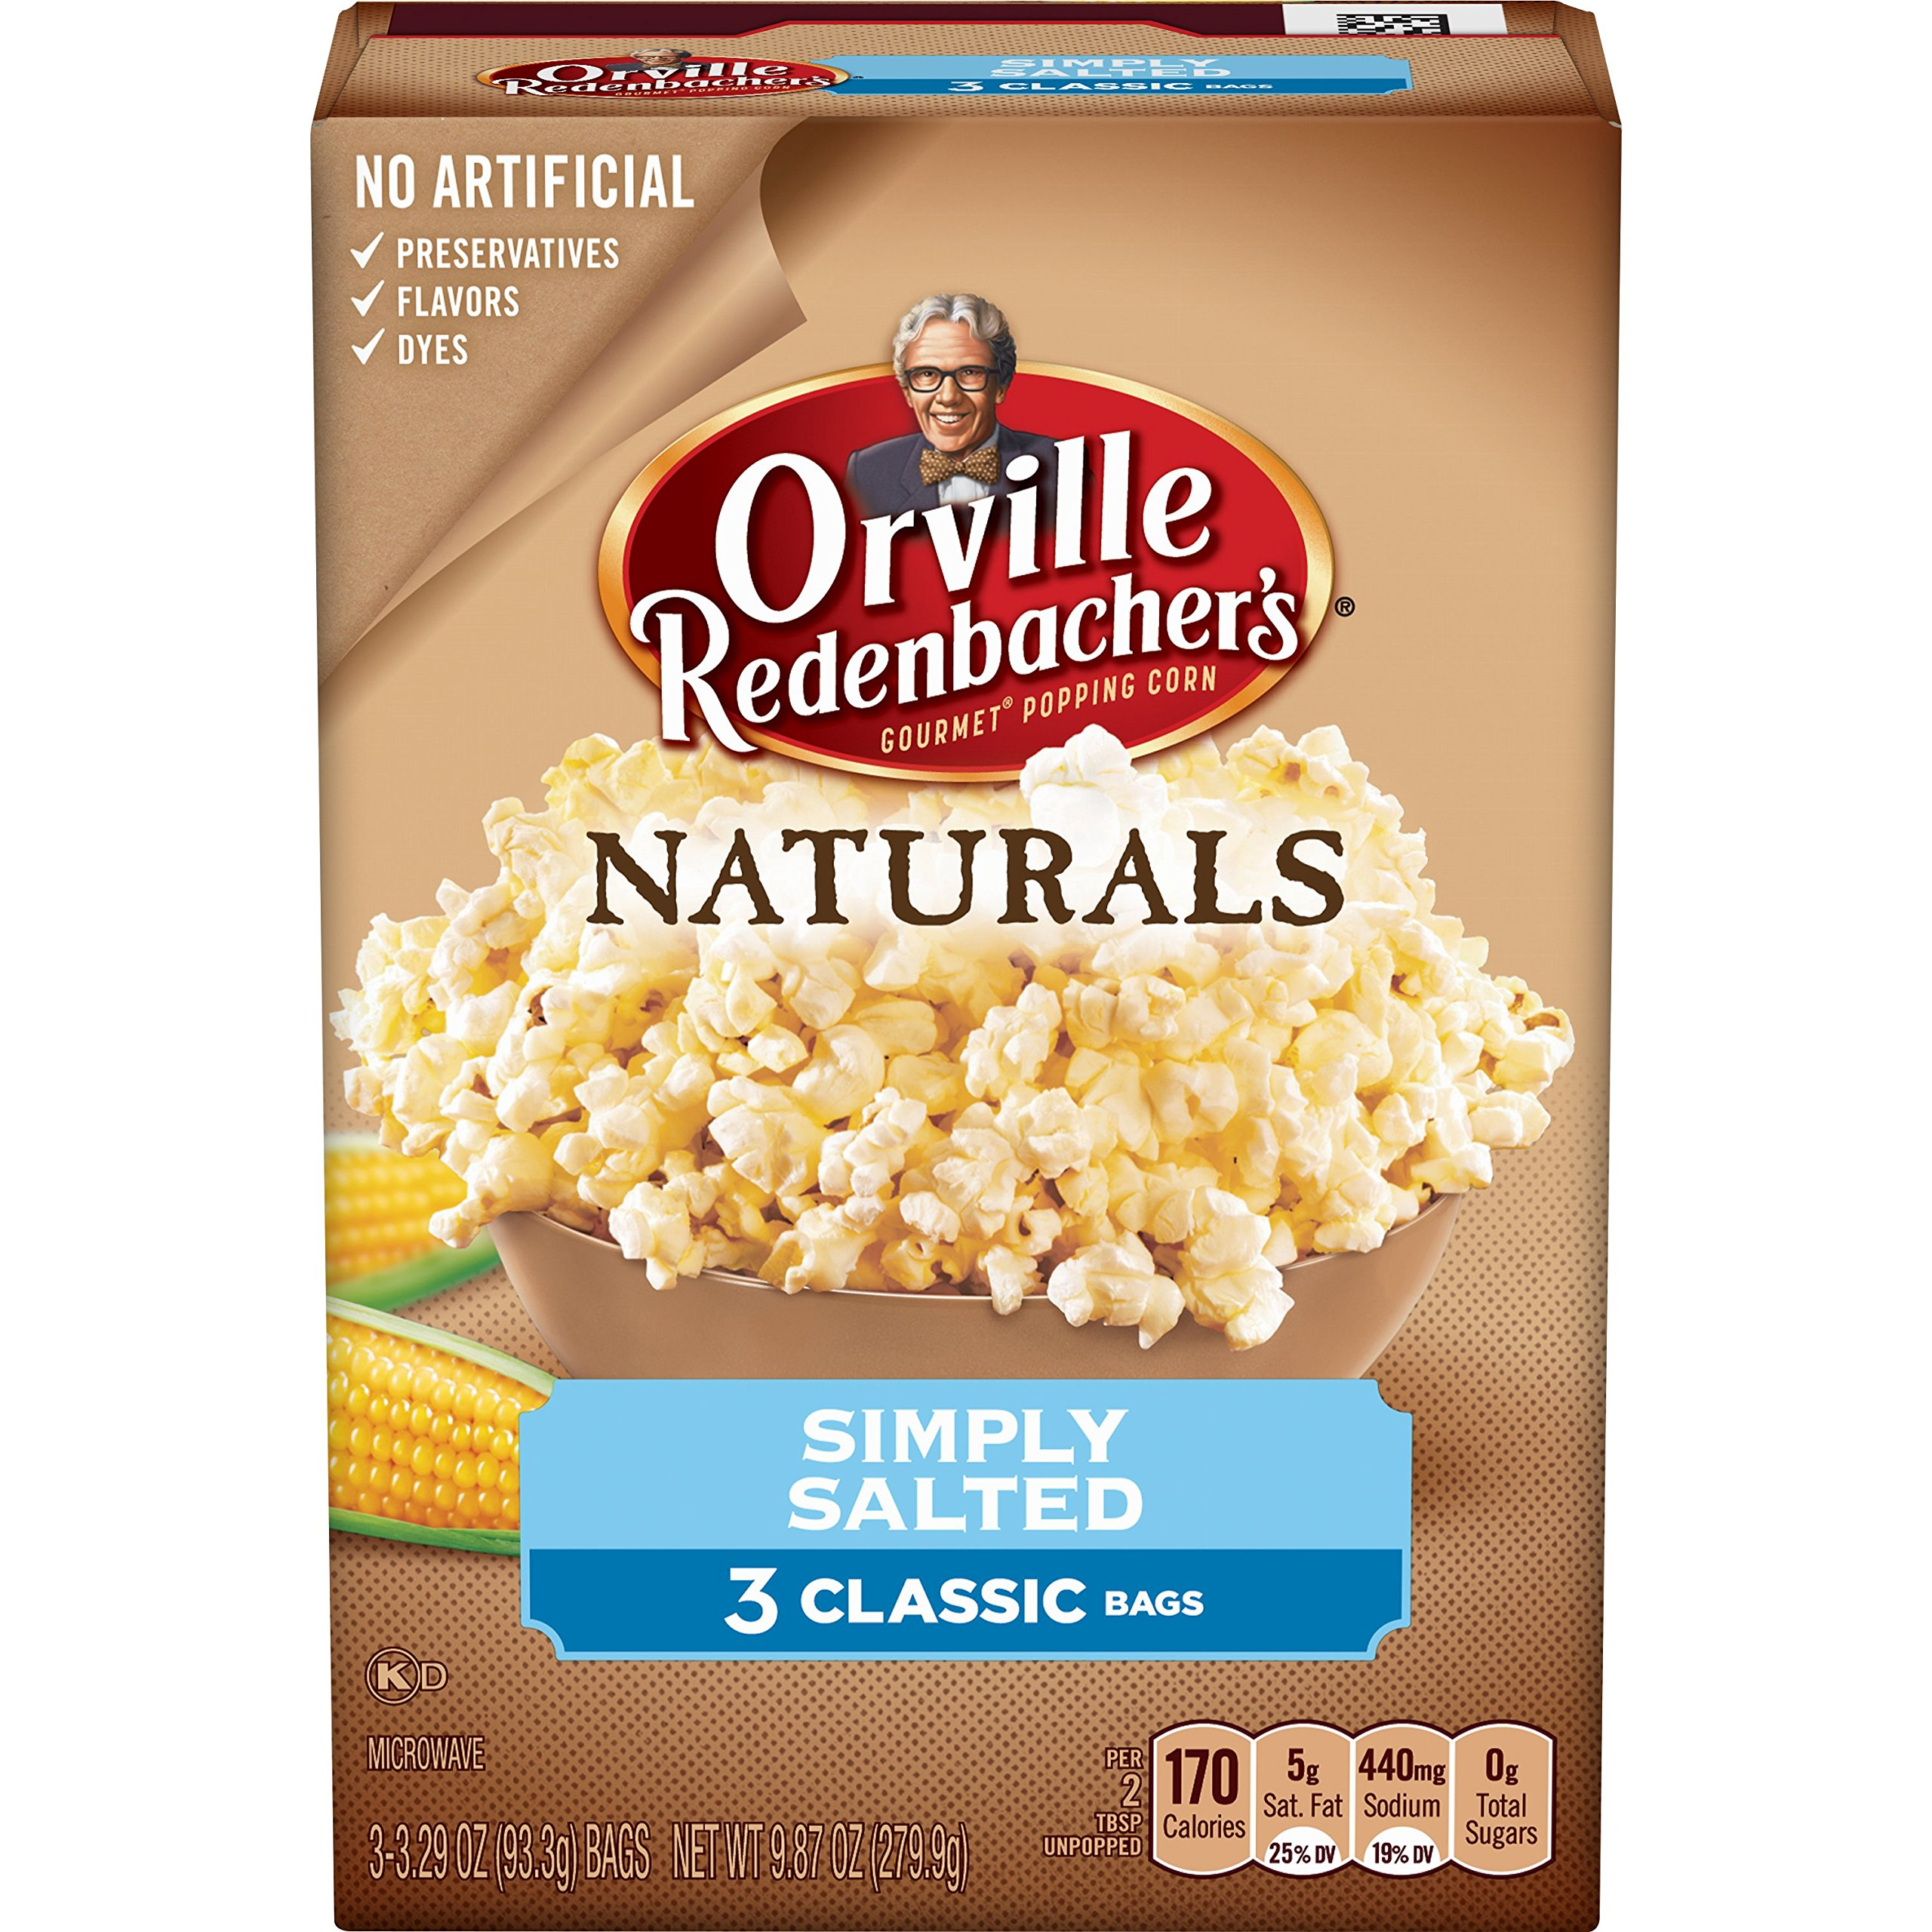 Orville Redenbacher's Naturals Simply Salted Popcorn,9.87 oz, 36 Count (Pack of 12)